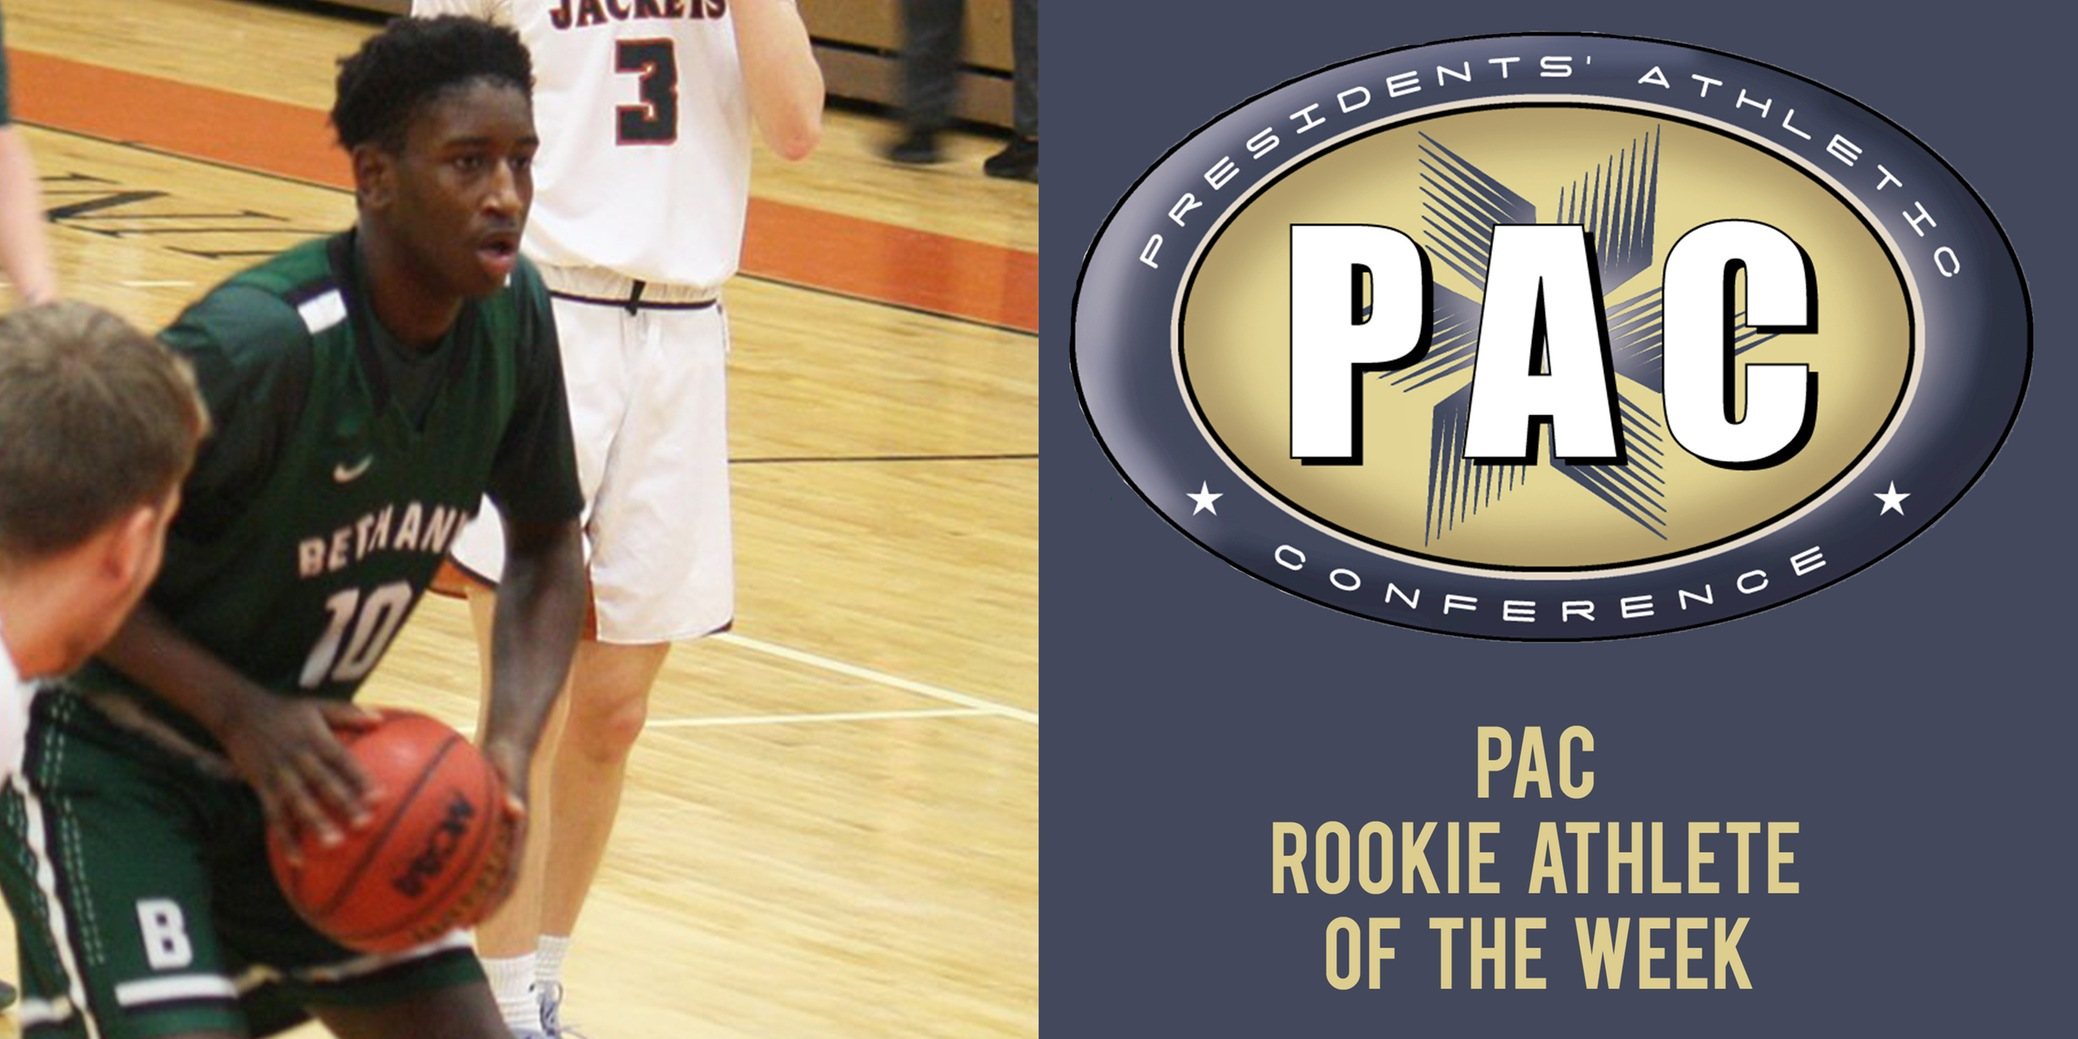 Bray Earns PAC Rookie of the Week Honors